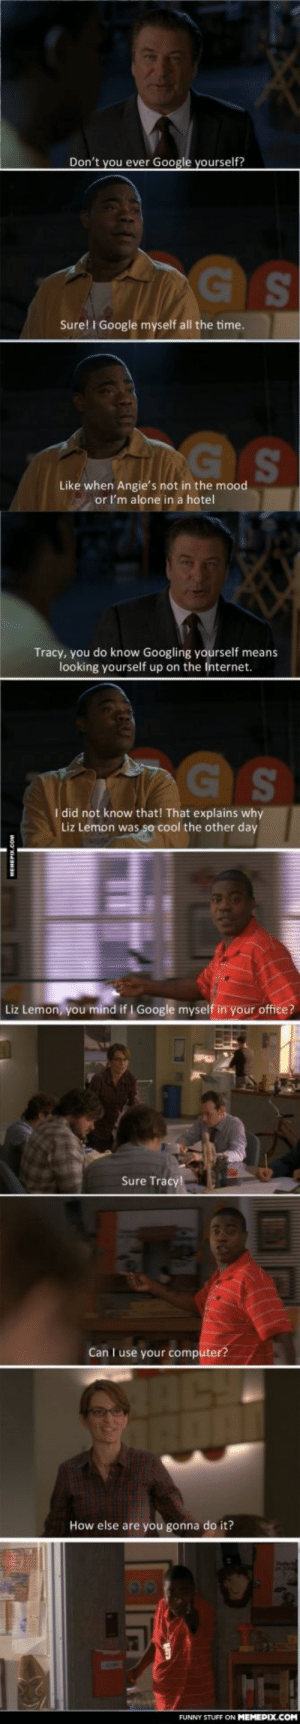 My favorite Tracy Morgan moment from 30 Rock.omg-humor.tumblr.com: Don't you ever Google yourself?  SA  Sure! I Google myself all the time.  Like when Angie's not in the mood  or l'm alone in a hotel  Tracy, you do know Googling yourself means  looking yourself up on the Internet.  I did not know that! That explains why  Liz Lemon was so cool the other day  Liz Lemon, you mind if I Google myself in your office?  Sure Tracy!  Can I use your computer?  How else are you gonna do it?  FUNNY STUFF ON MEMEPIX.COM My favorite Tracy Morgan moment from 30 Rock.omg-humor.tumblr.com